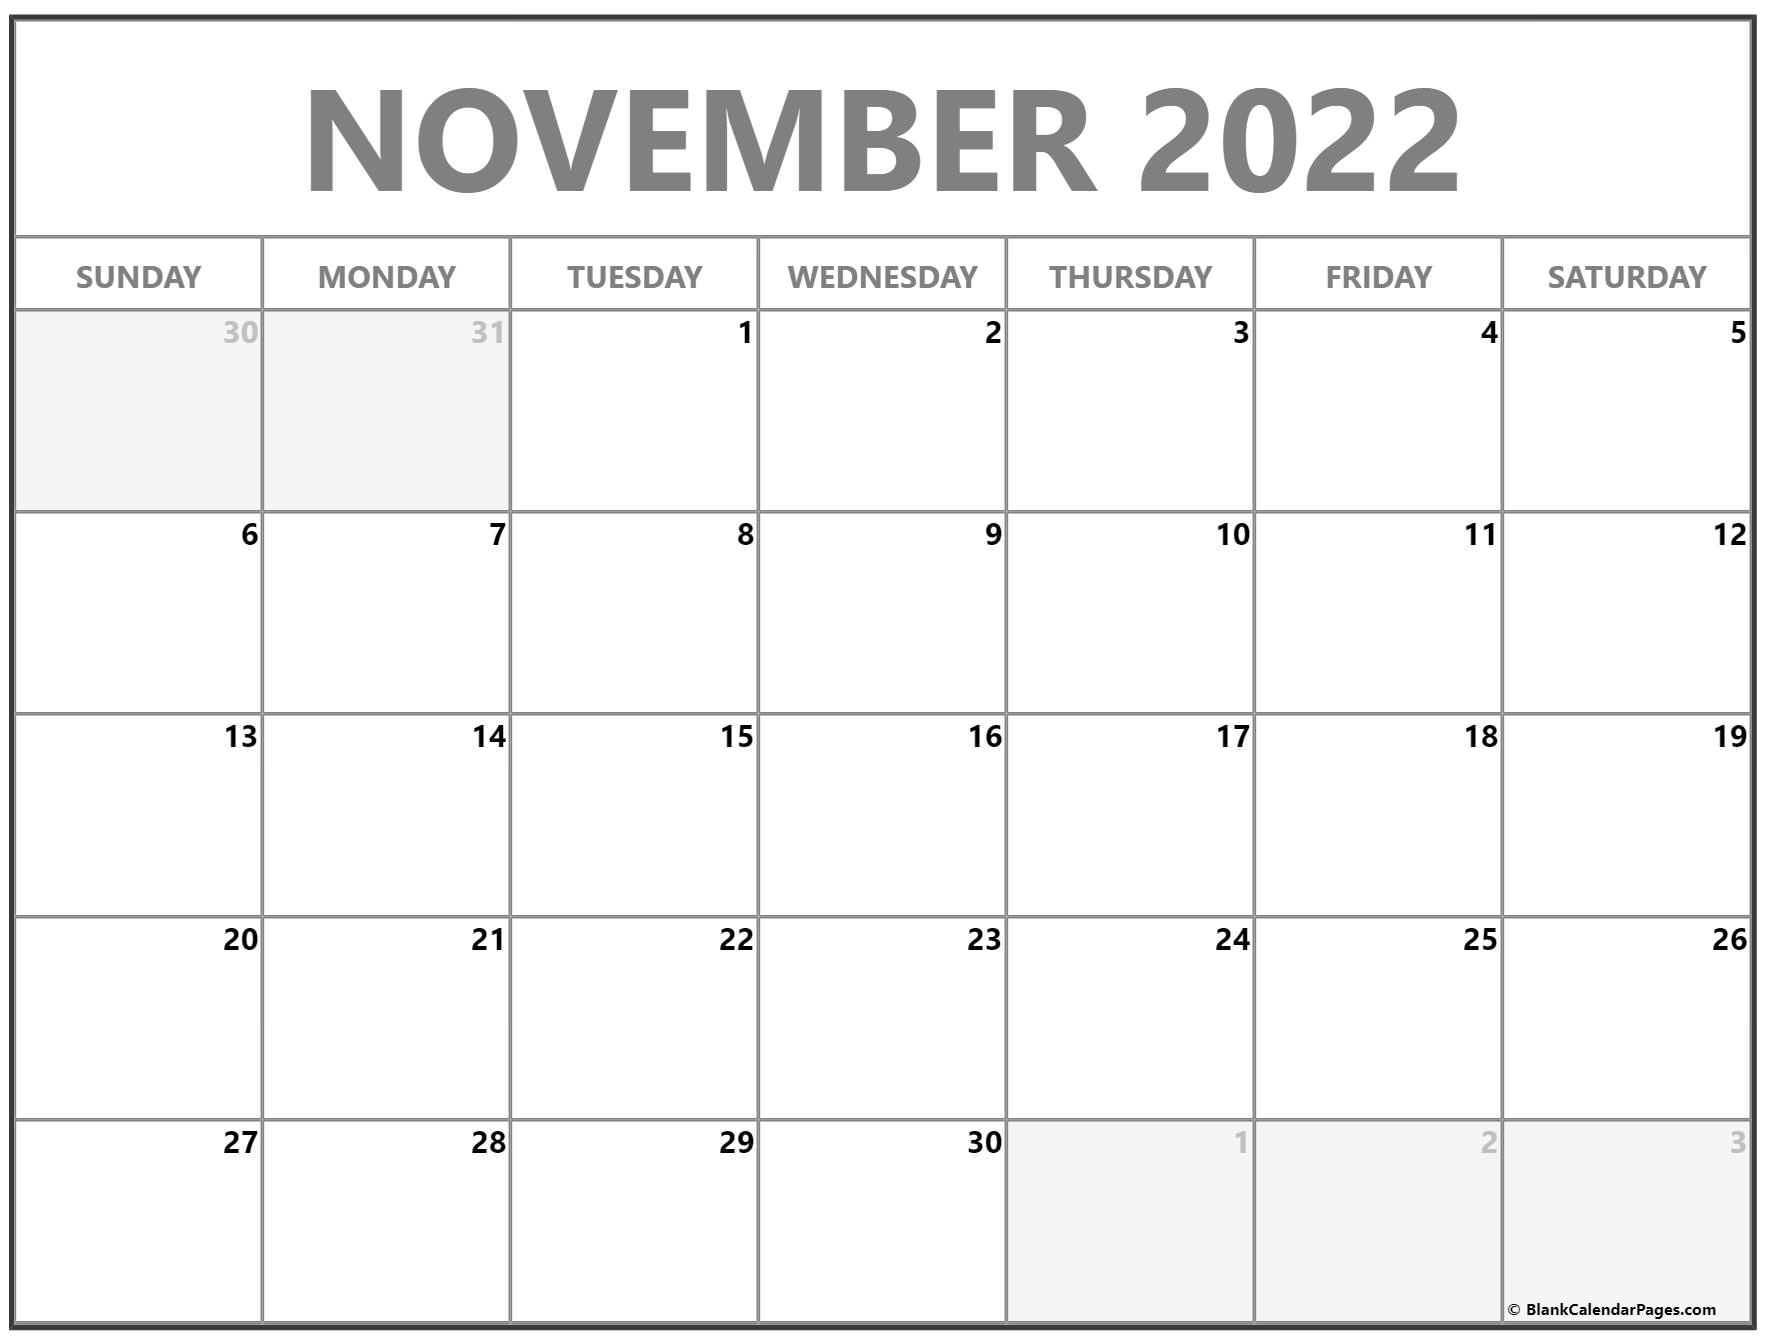 November 2022 calendar | free printable monthly calendars